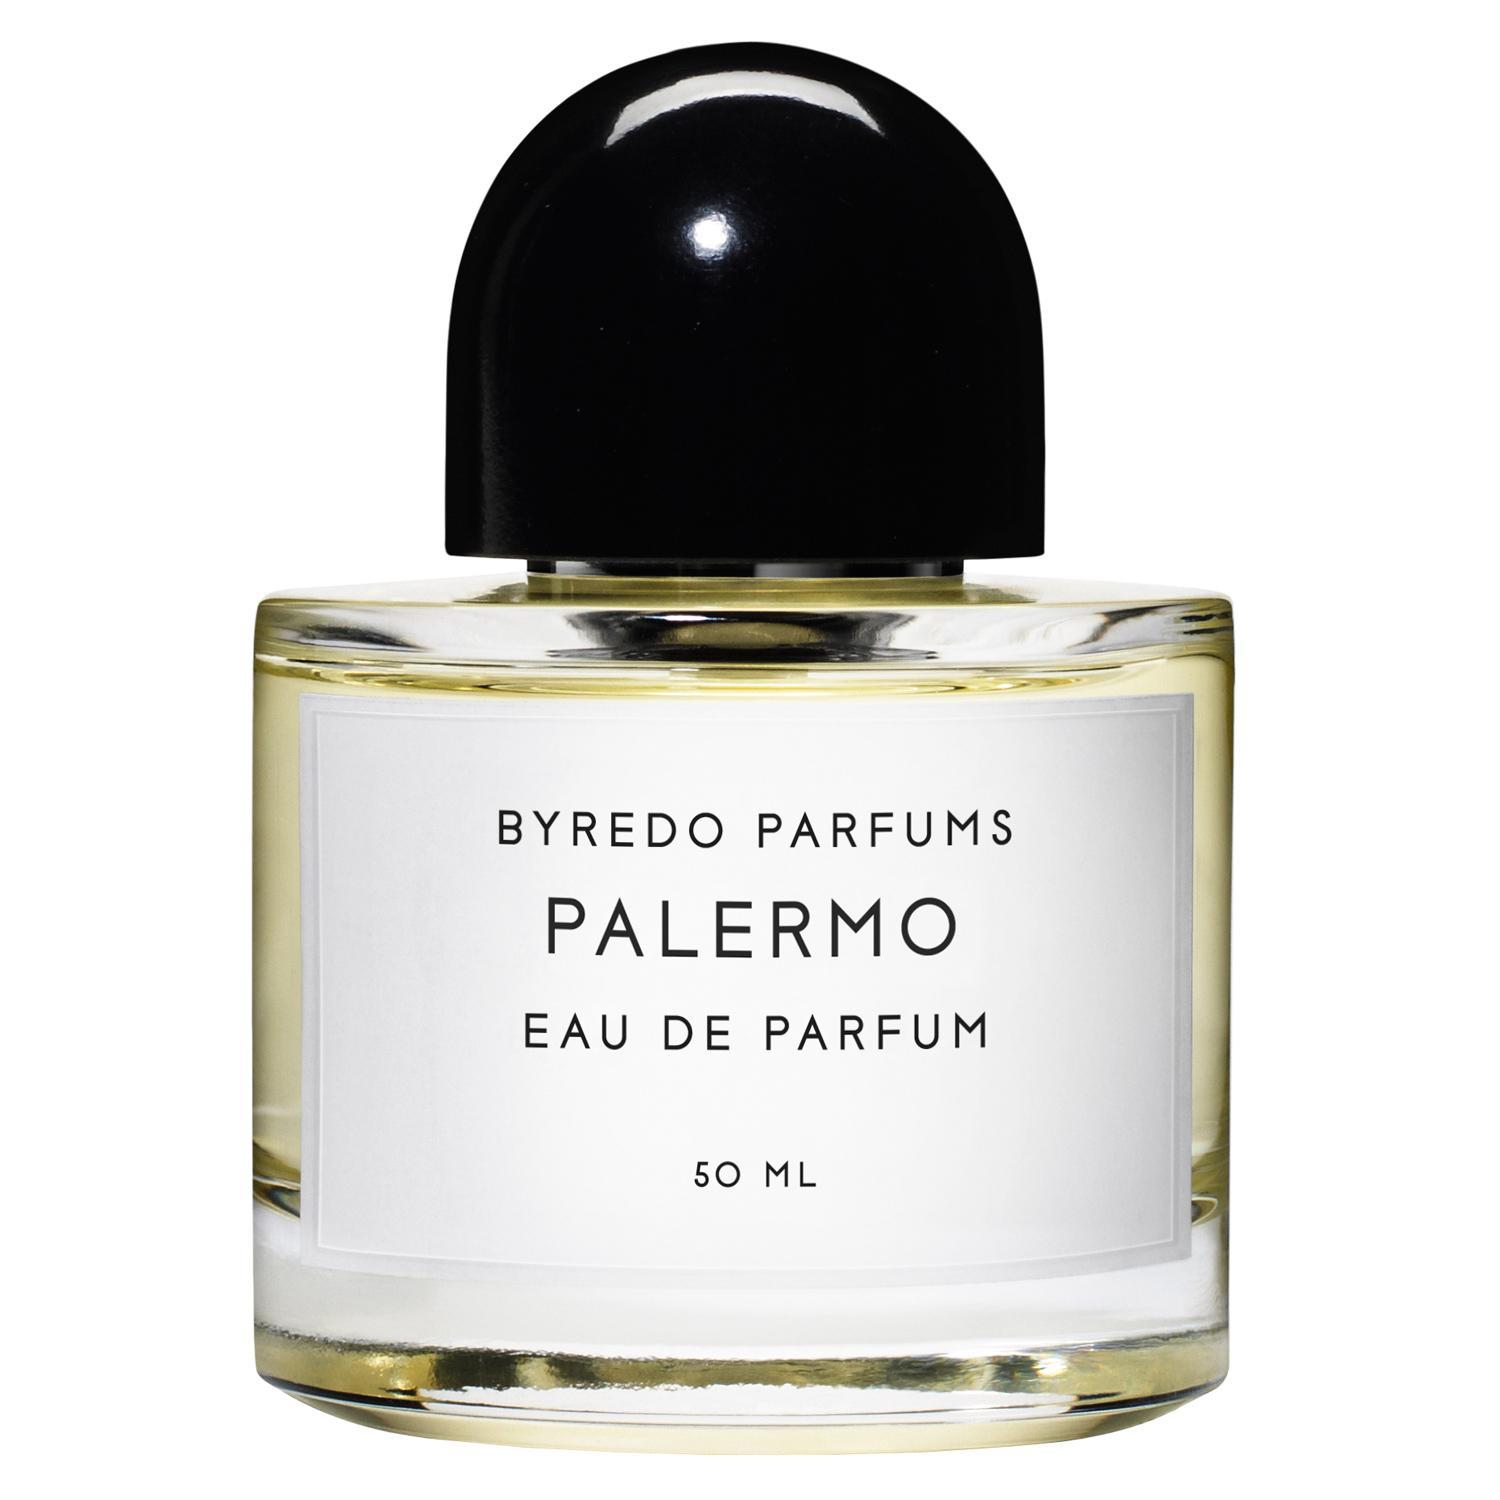 PALERMO by BYREDO 5ml Travel Spray Bigarade Musk Ambrette Perfume Citrus